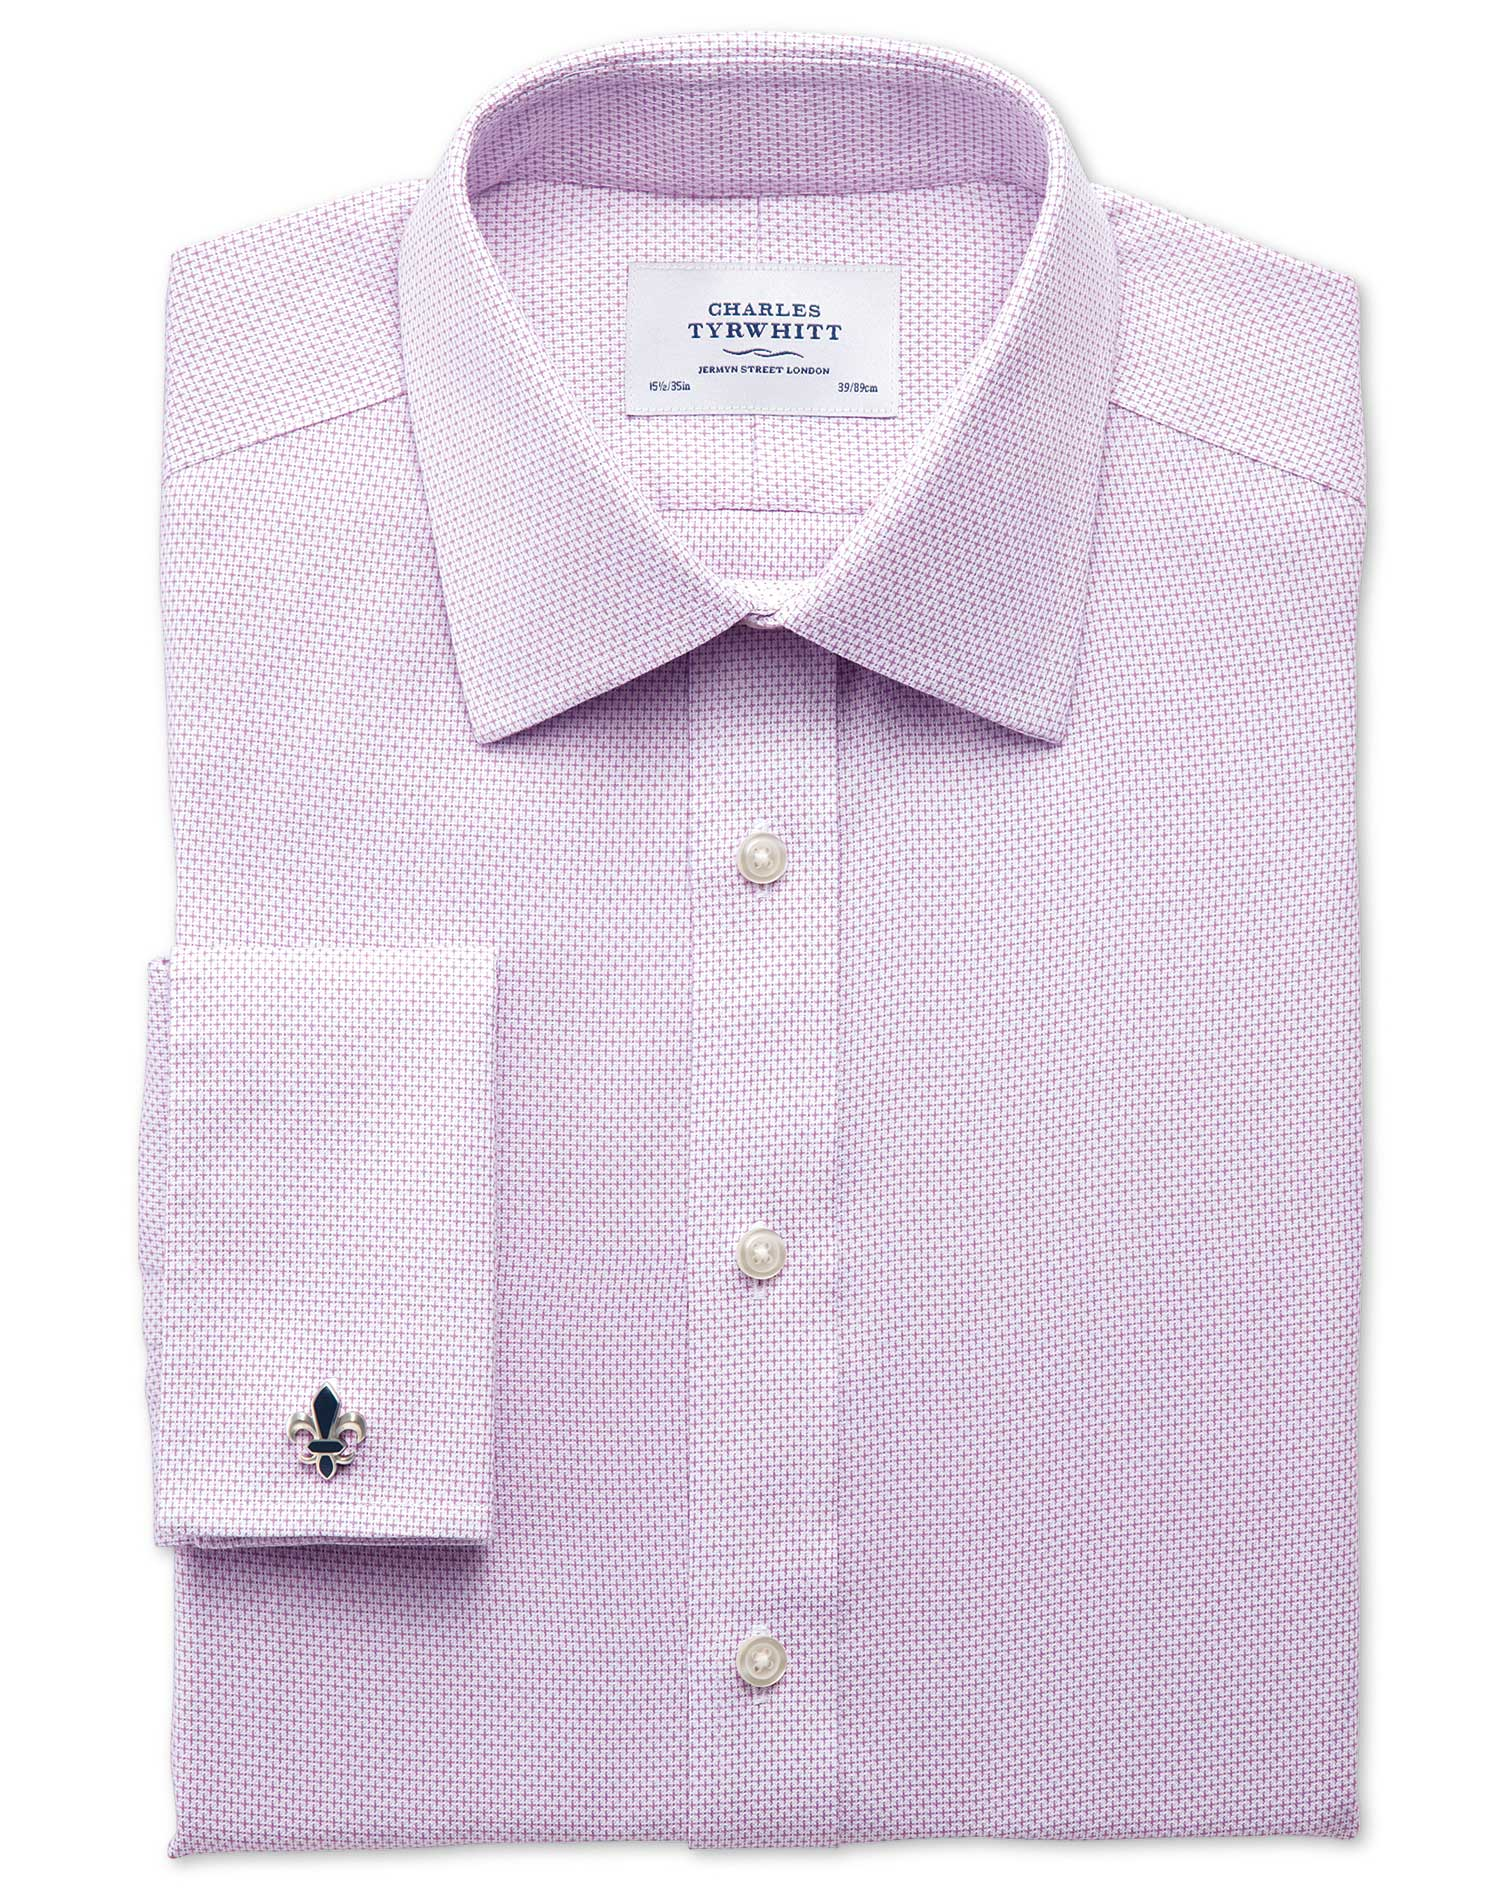 Classic Fit Non-Iron Imperial Weave Lilac Cotton Formal Shirt Double Cuff Size 15.5/34 by Charles Ty